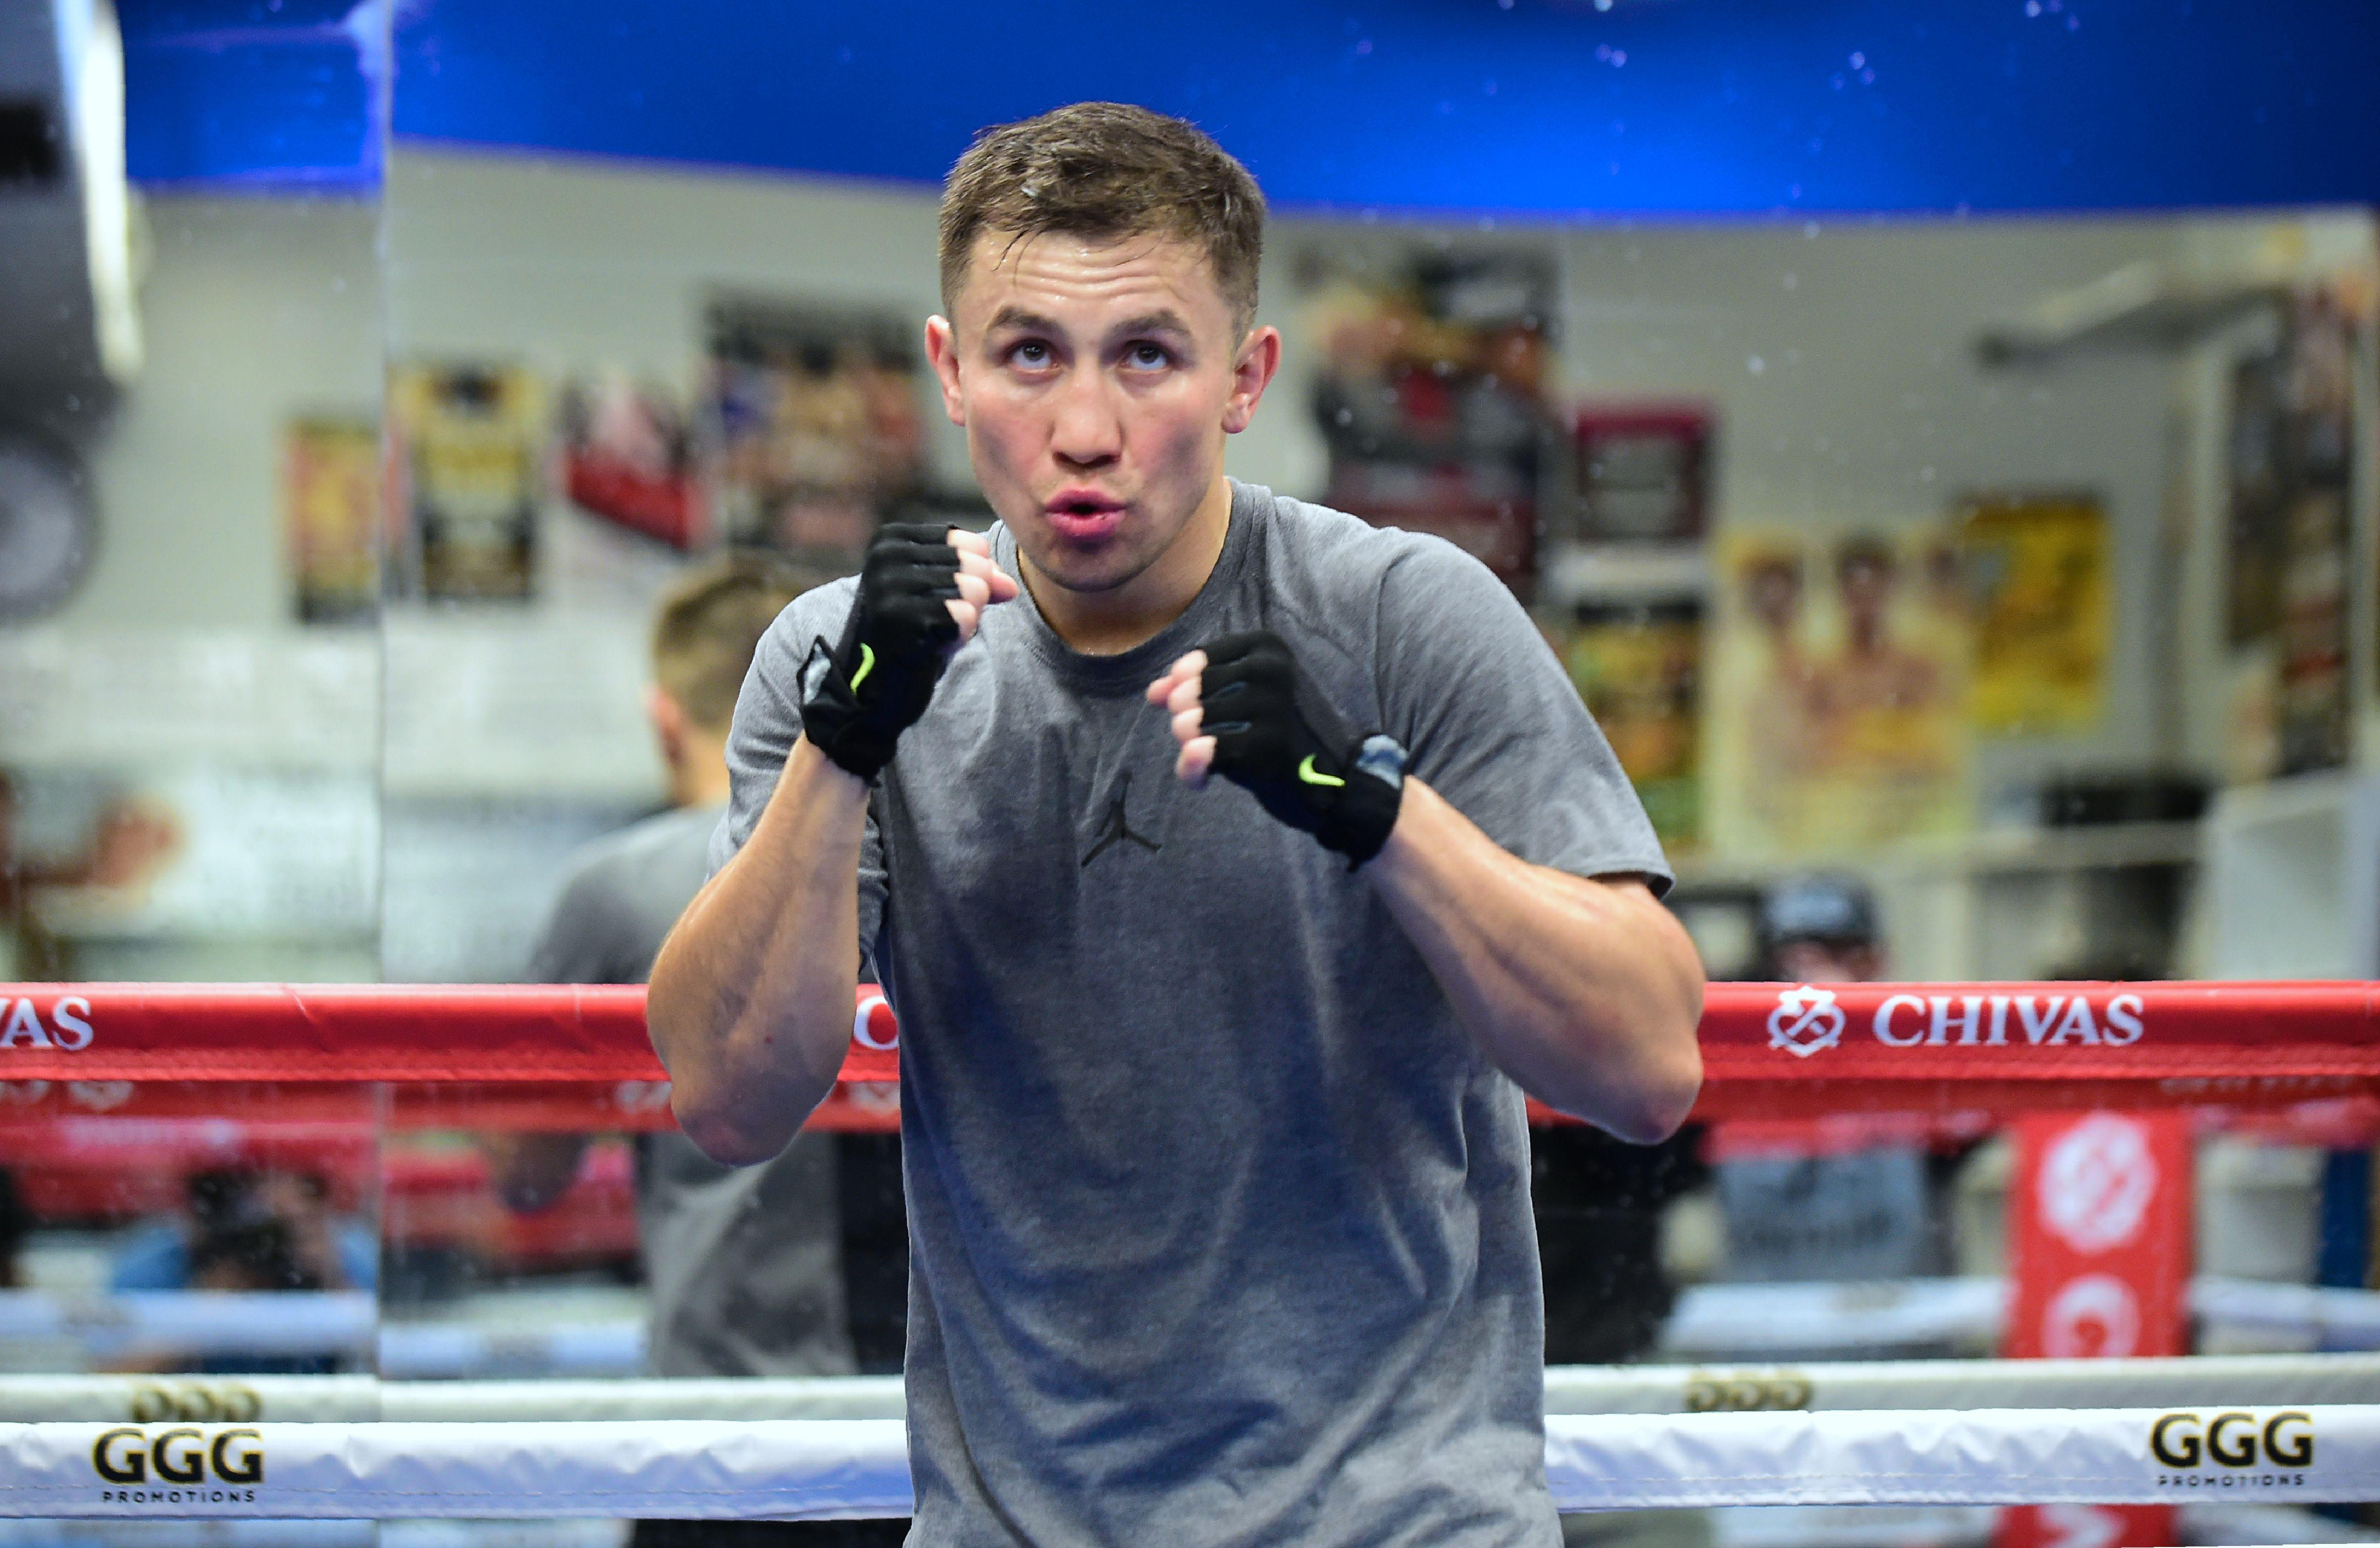 Gennady Golovkin is determined not to let his training go to waste and wants to fight on May 5 despite Canelo Alvarez pulling out